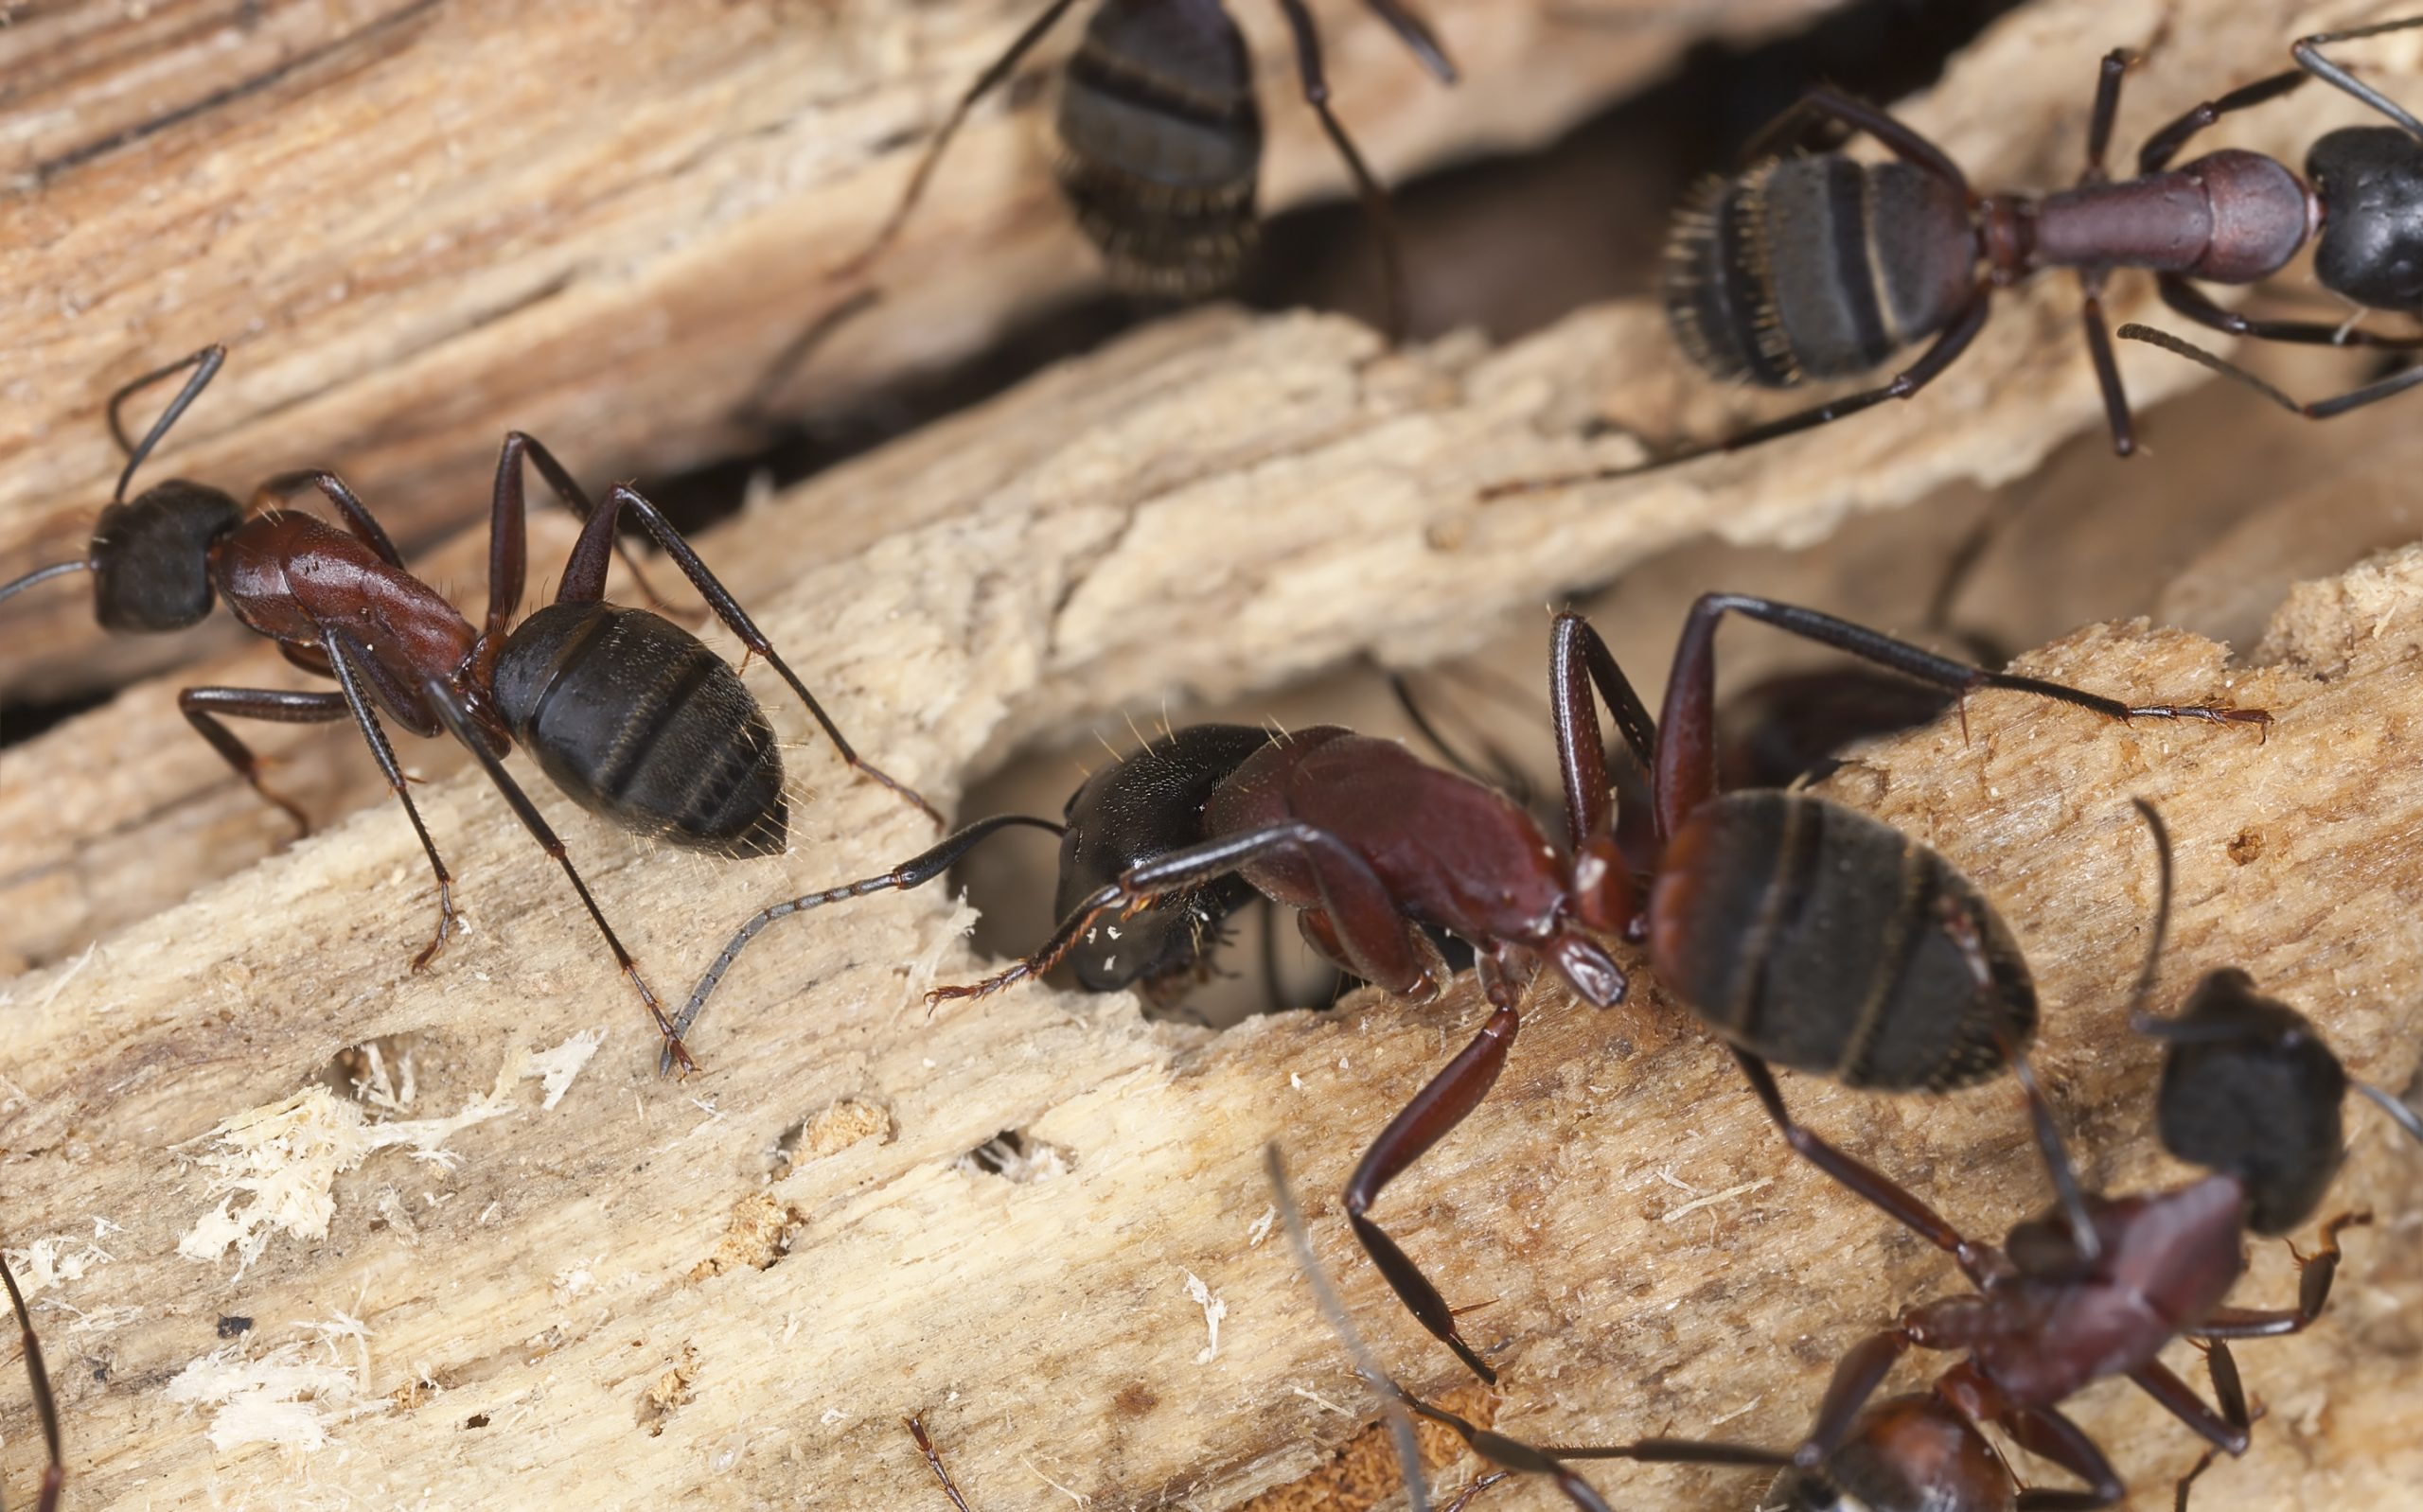 Are carpenter ants damaging your home?